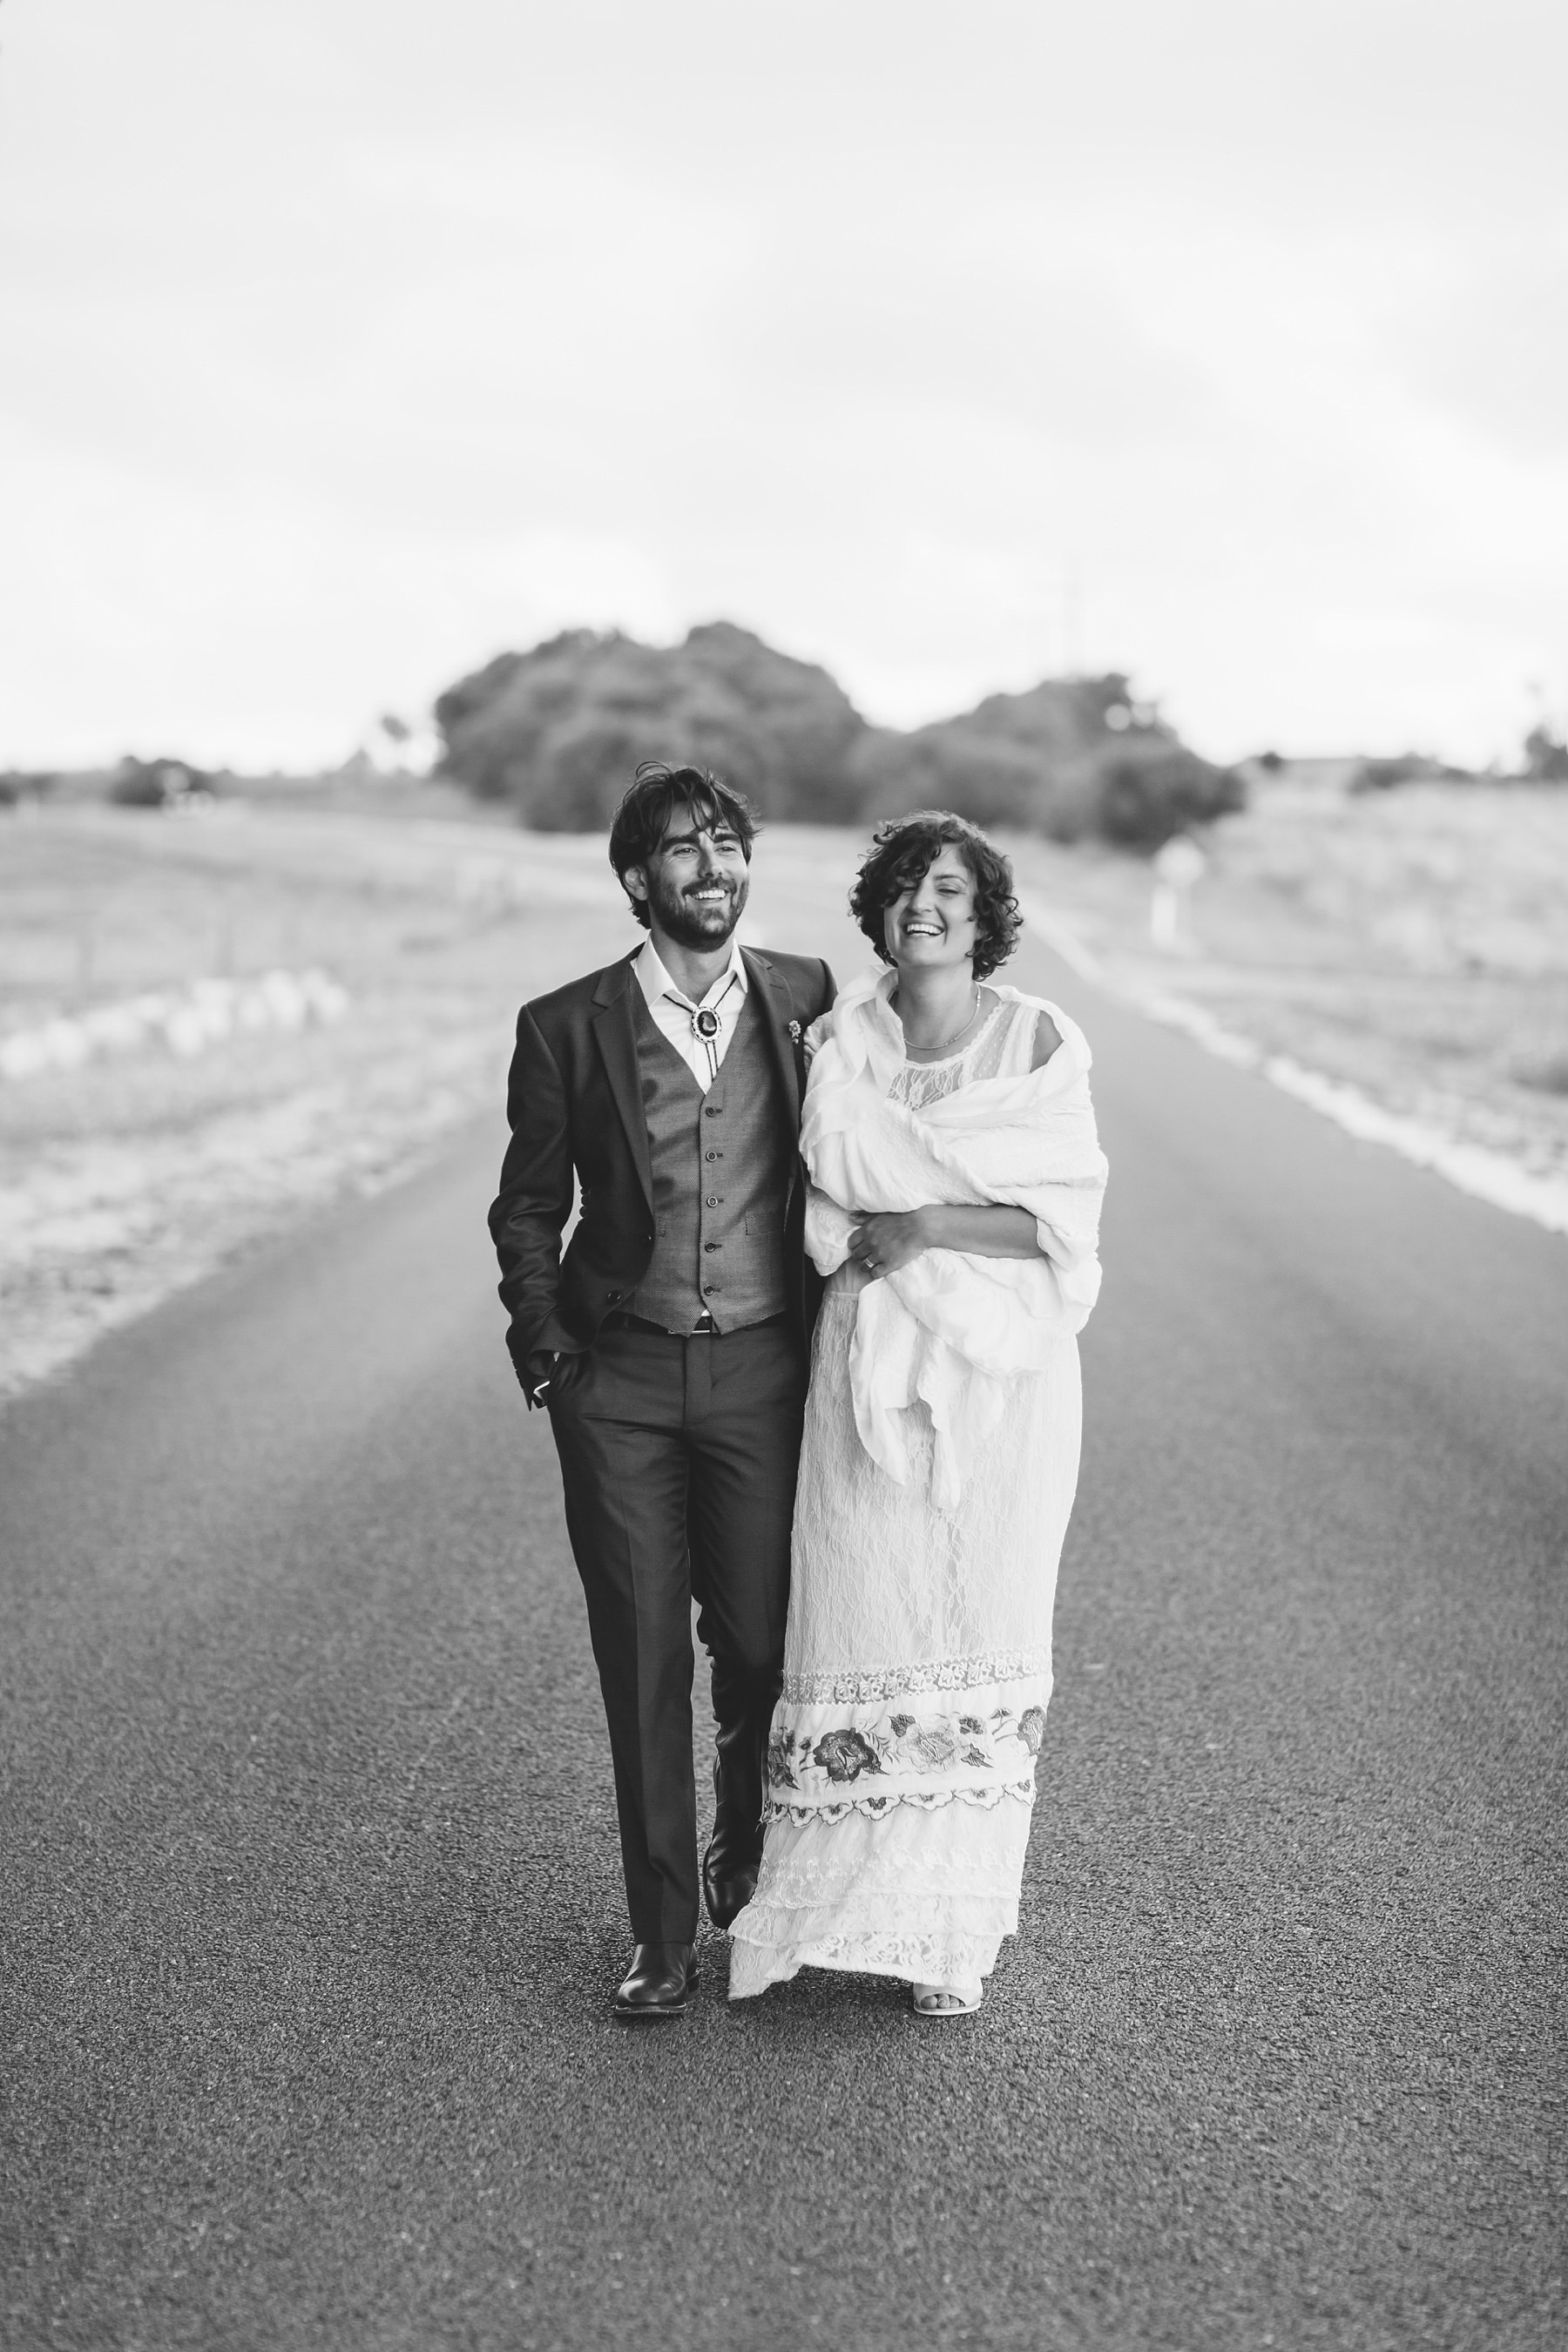 bride & groom walking down the road together